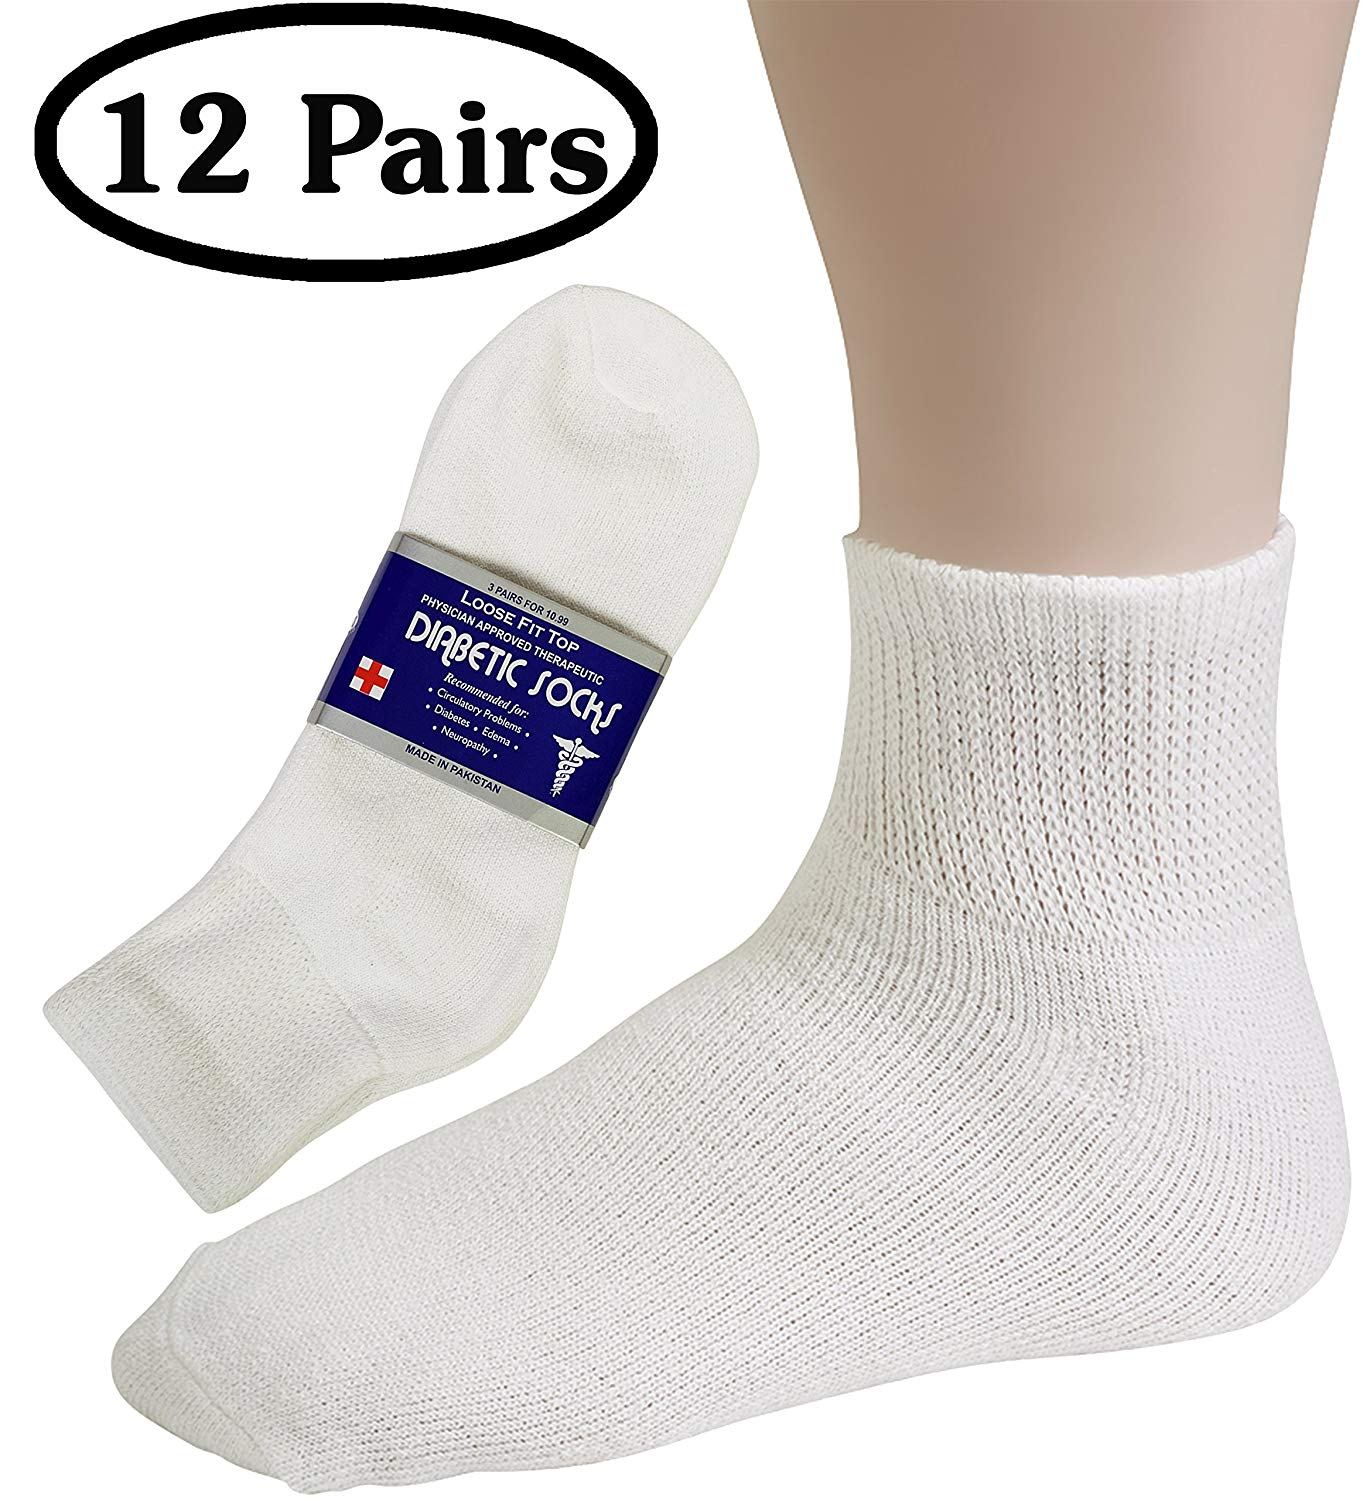 62996af652 Get Quotations · Debra Weitzner Mens Womens Diabetic Socks - Crew Ankle -  Non Binding - 12 Pairs…